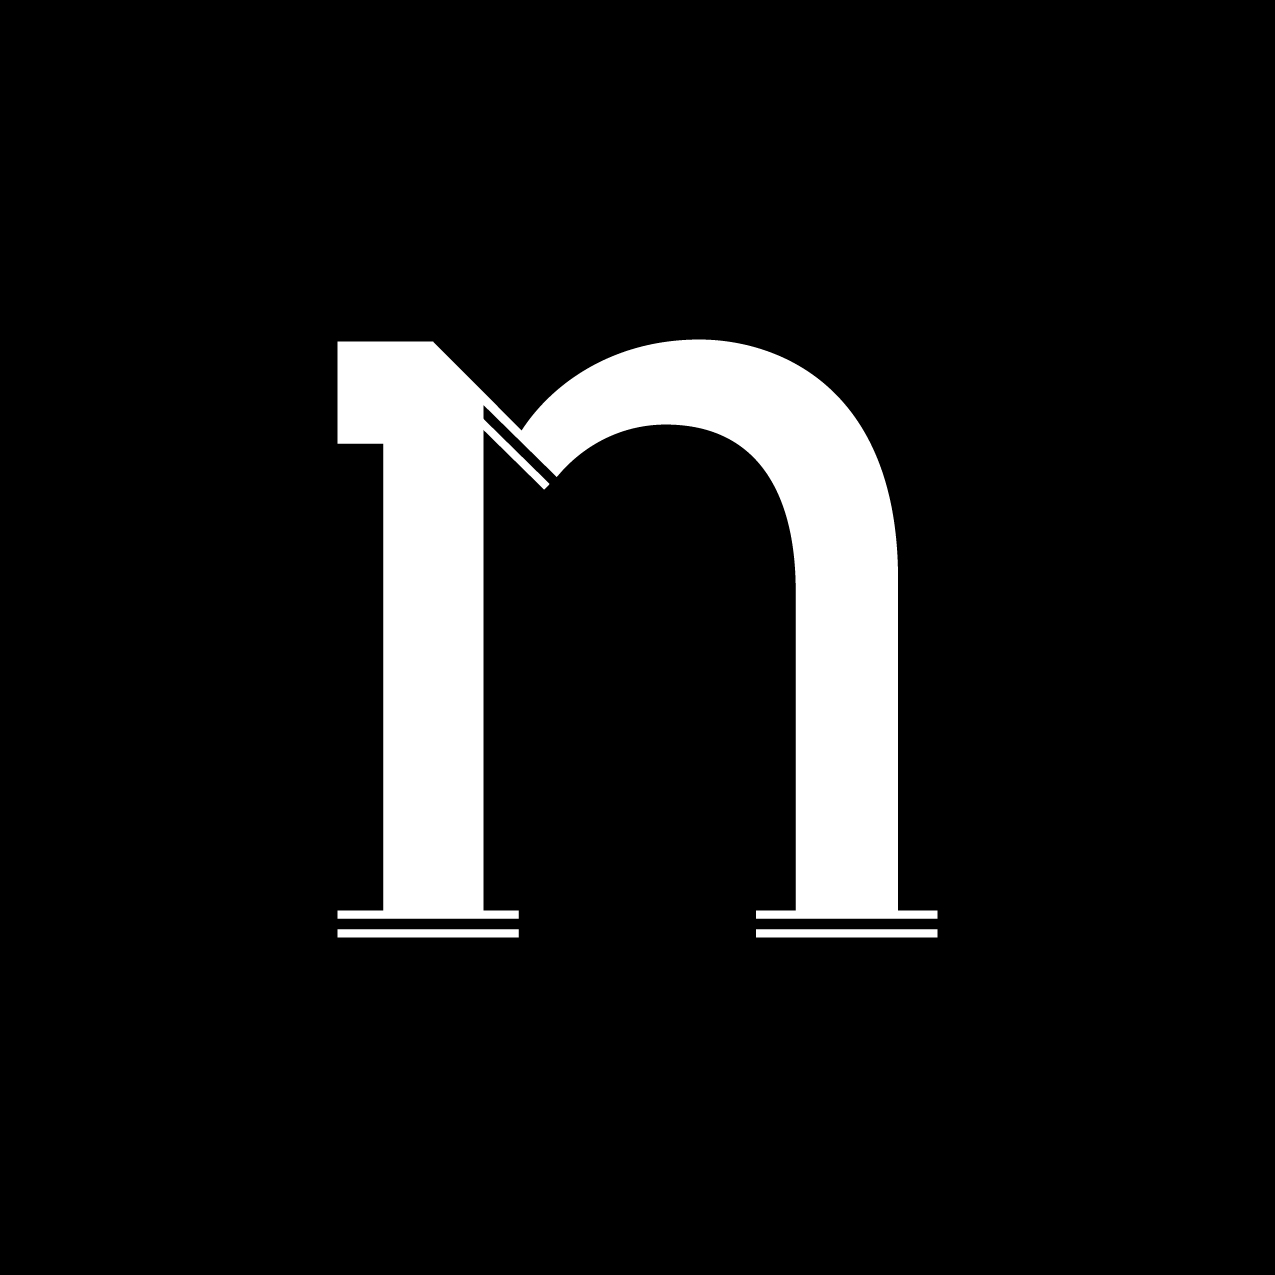 Letter N12 Design by Furia